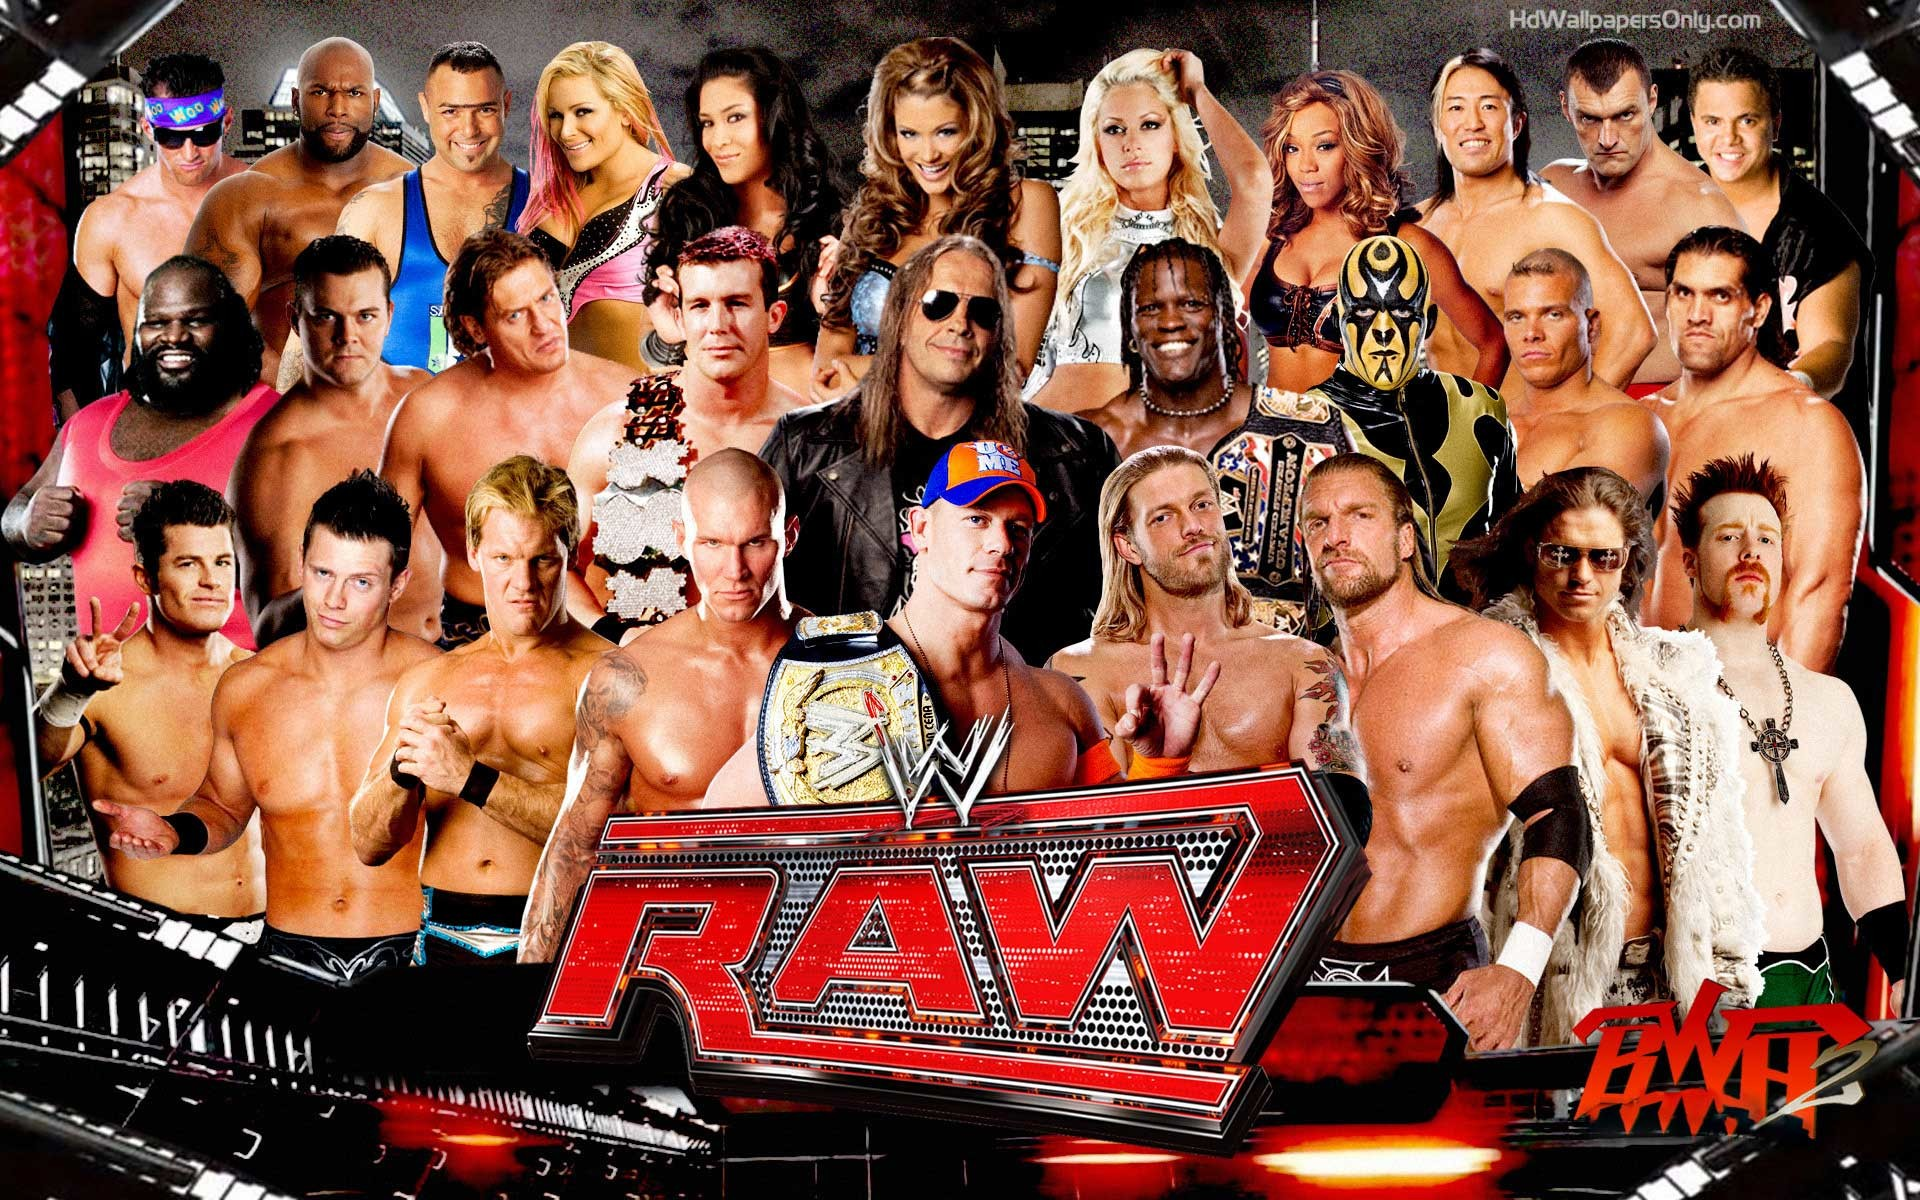 Res: 1920x1200, WWE Wallpapers HD Quality - HD Wallpapers OnlyHD Wallpapers Only 2 .